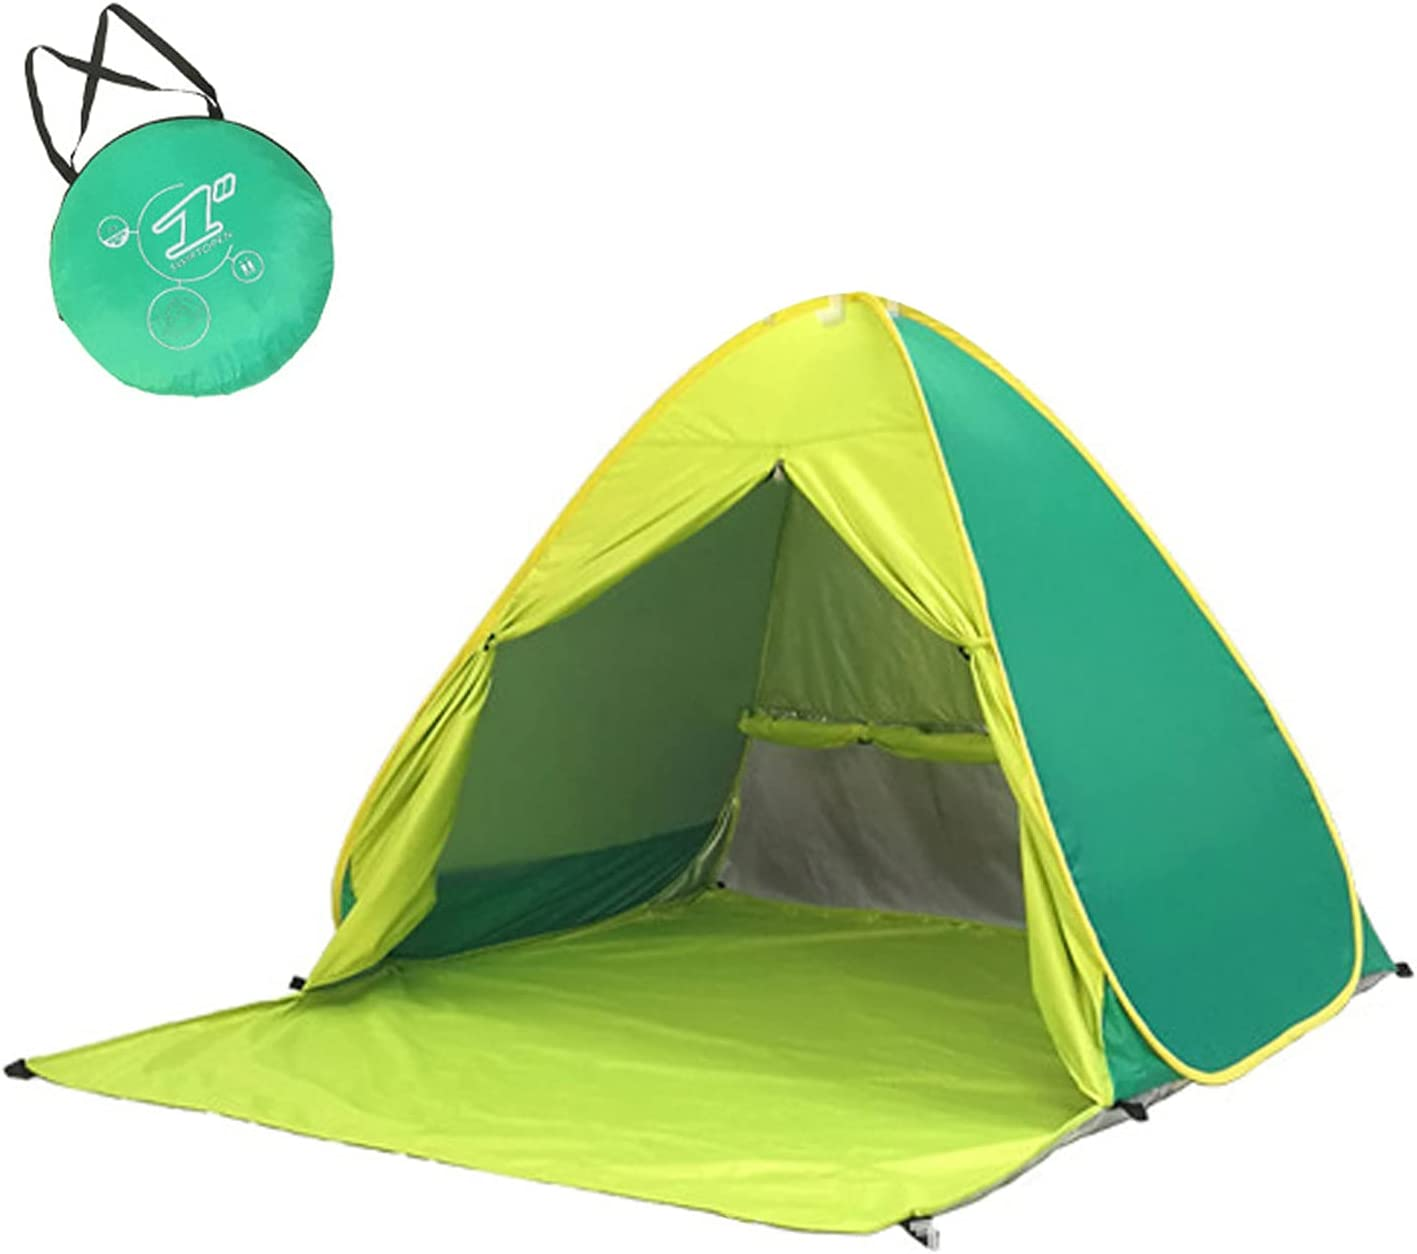 Neiiko Beach Tent Anti-UV Portable Dedication Recommended Sun Shade Perso 3 Shelter for